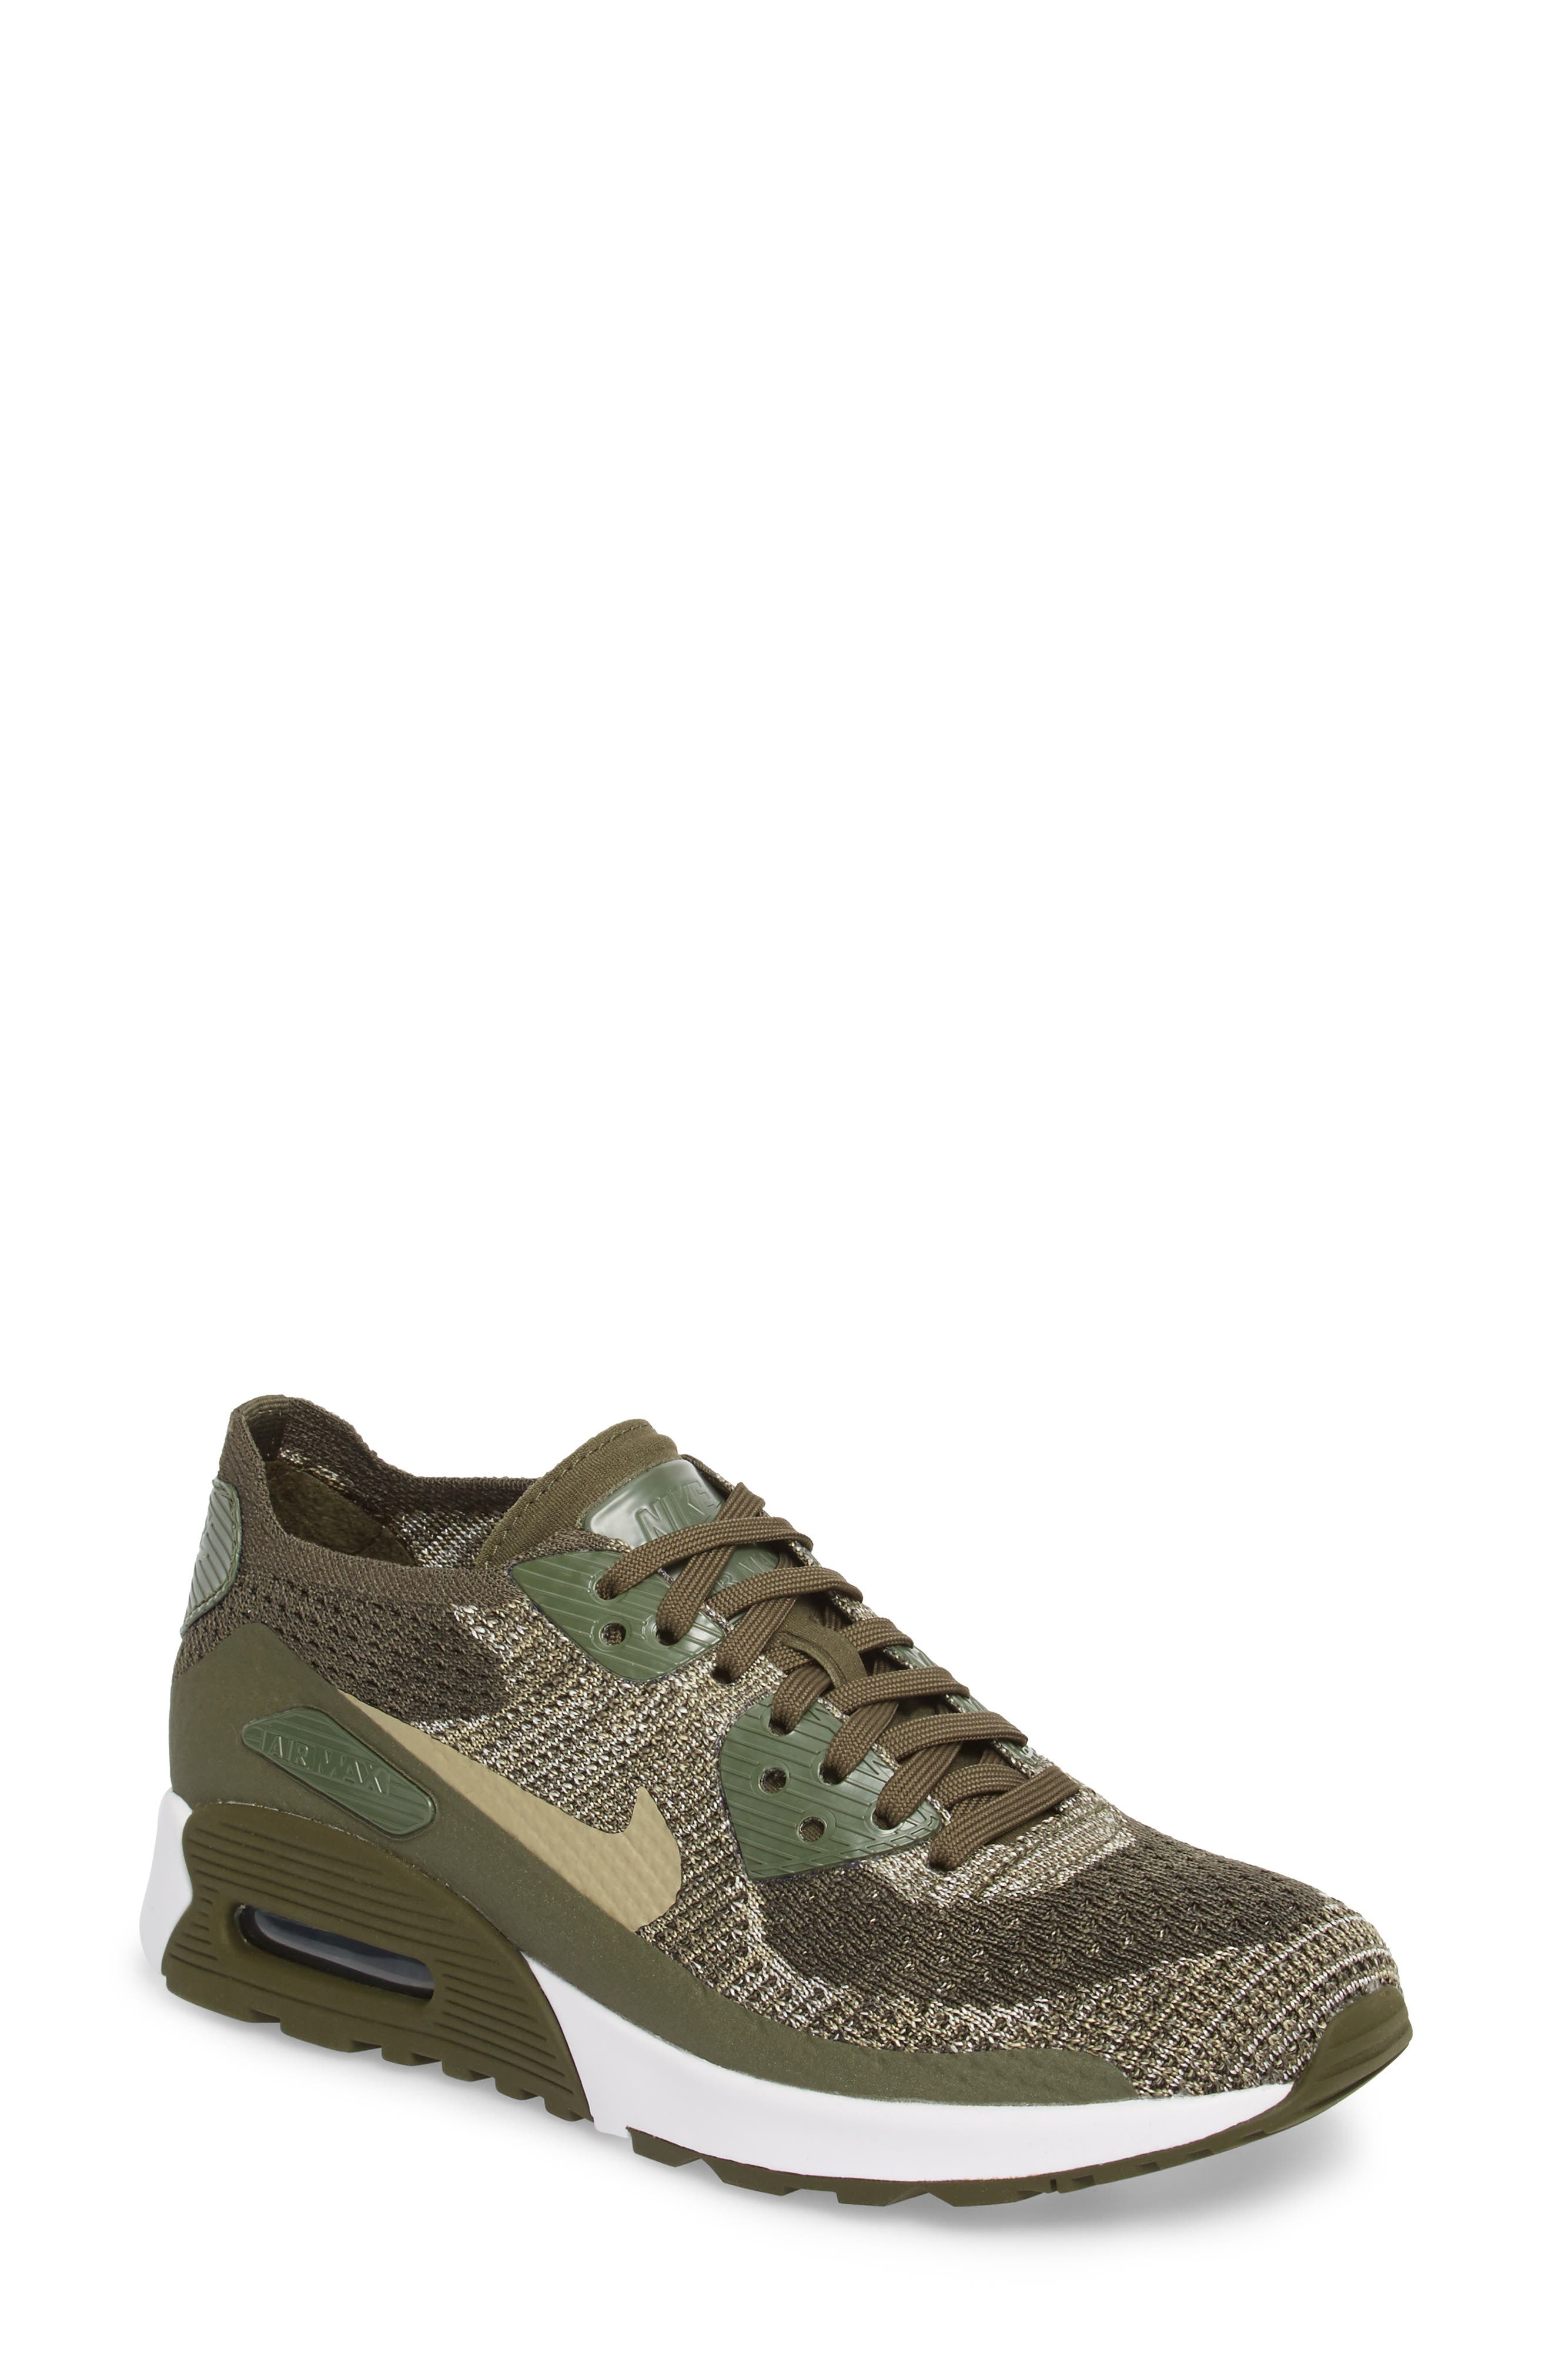 Air Max 90 Flyknit Ultra 2.0 Sneaker,                         Main,                         color, Cargo Khaki/ Neutral Olive